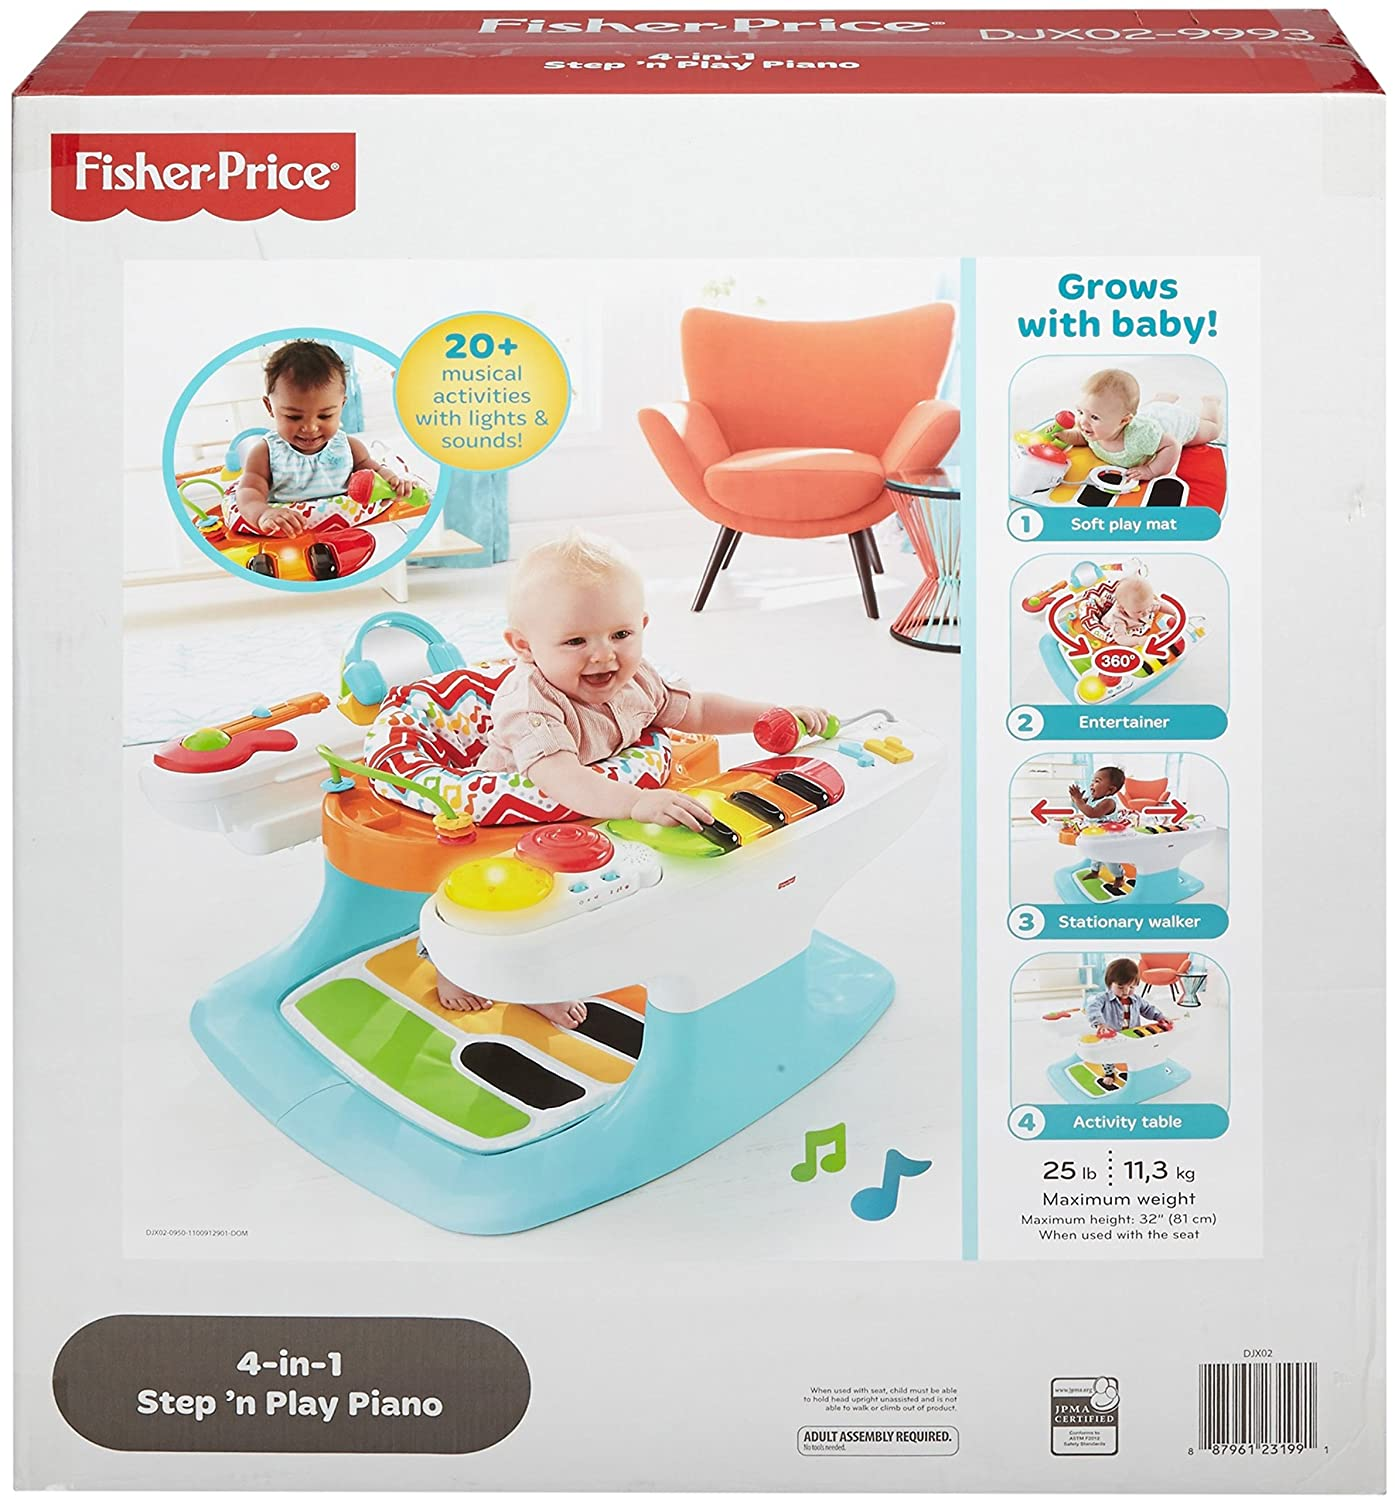 Amazon.com: Fisher-Price - Piano 4 en 1: Baby